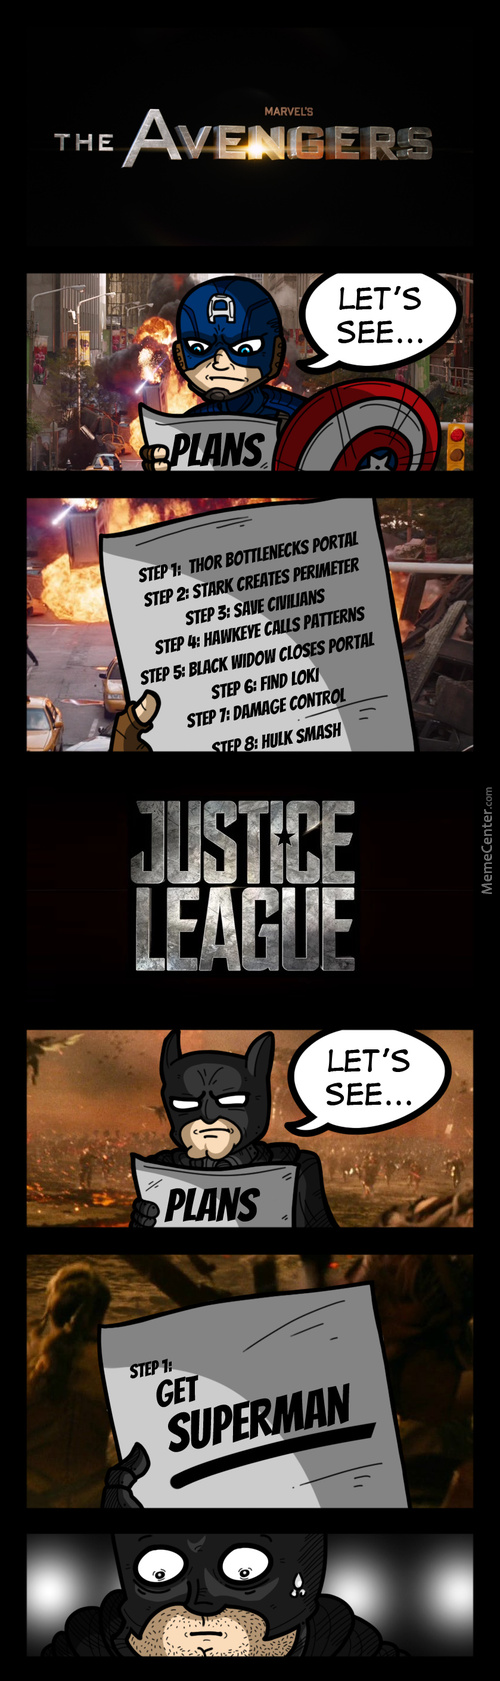 The Main Fight For Avengers And Justice League Summed Up